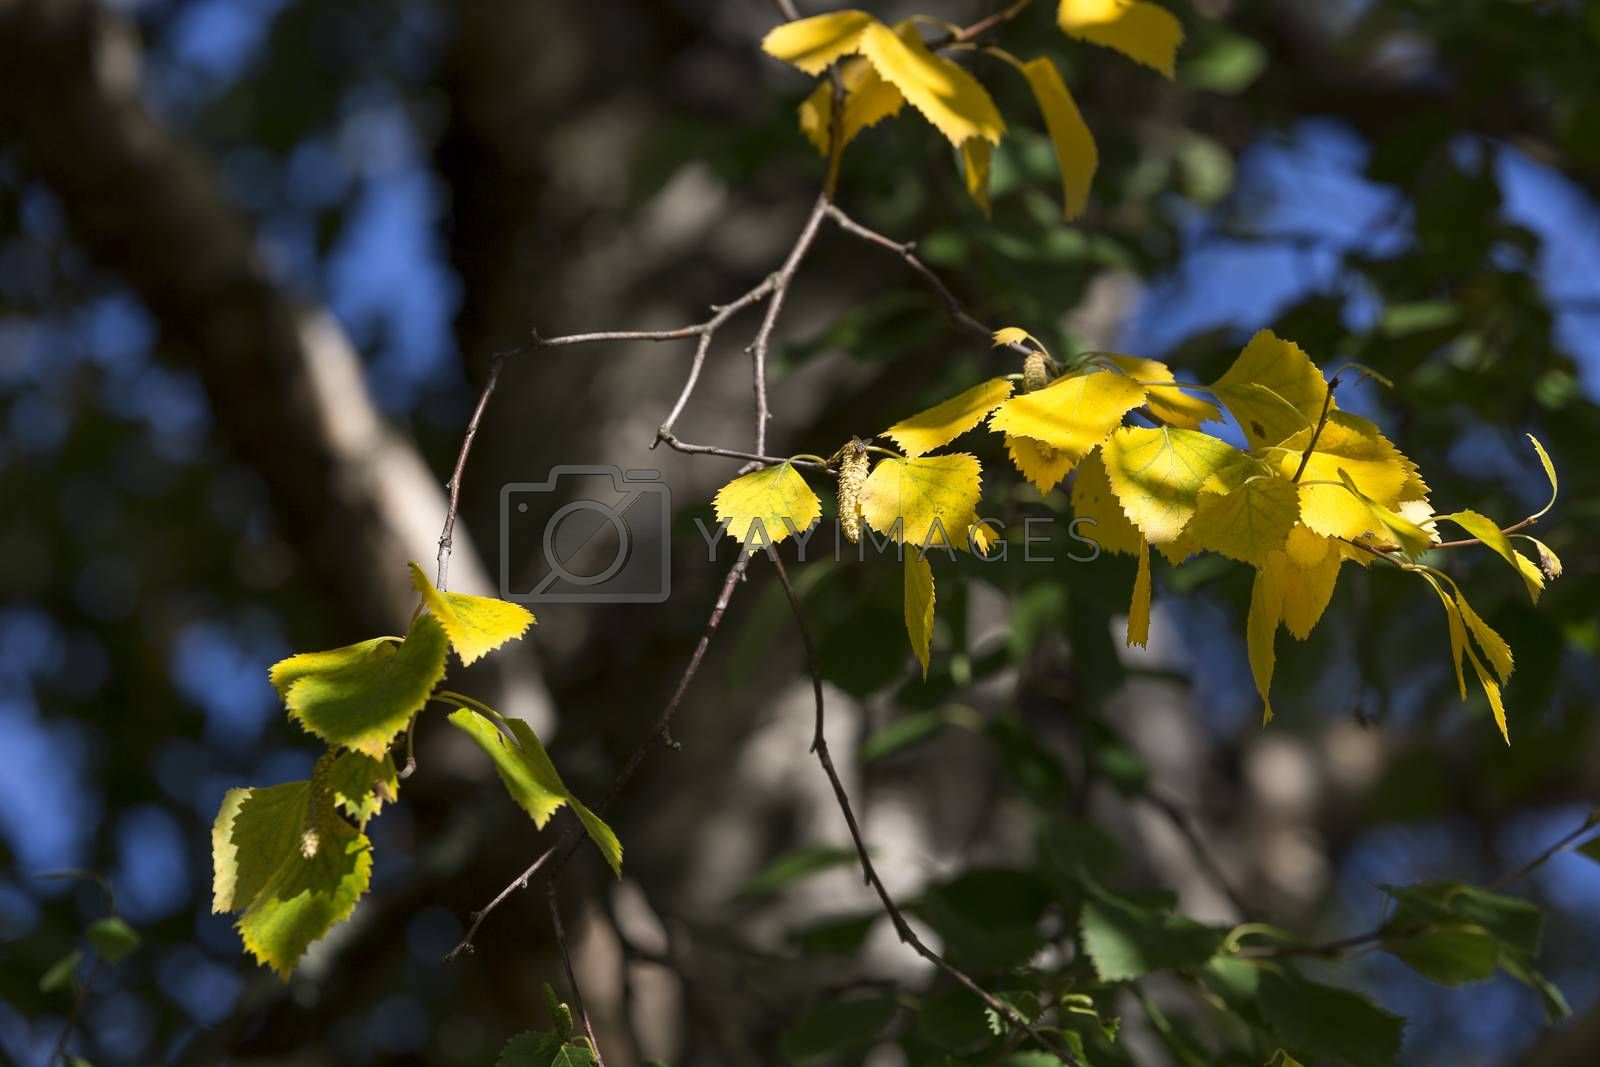 Yellow Birch Leaves in Tree with green leaves.